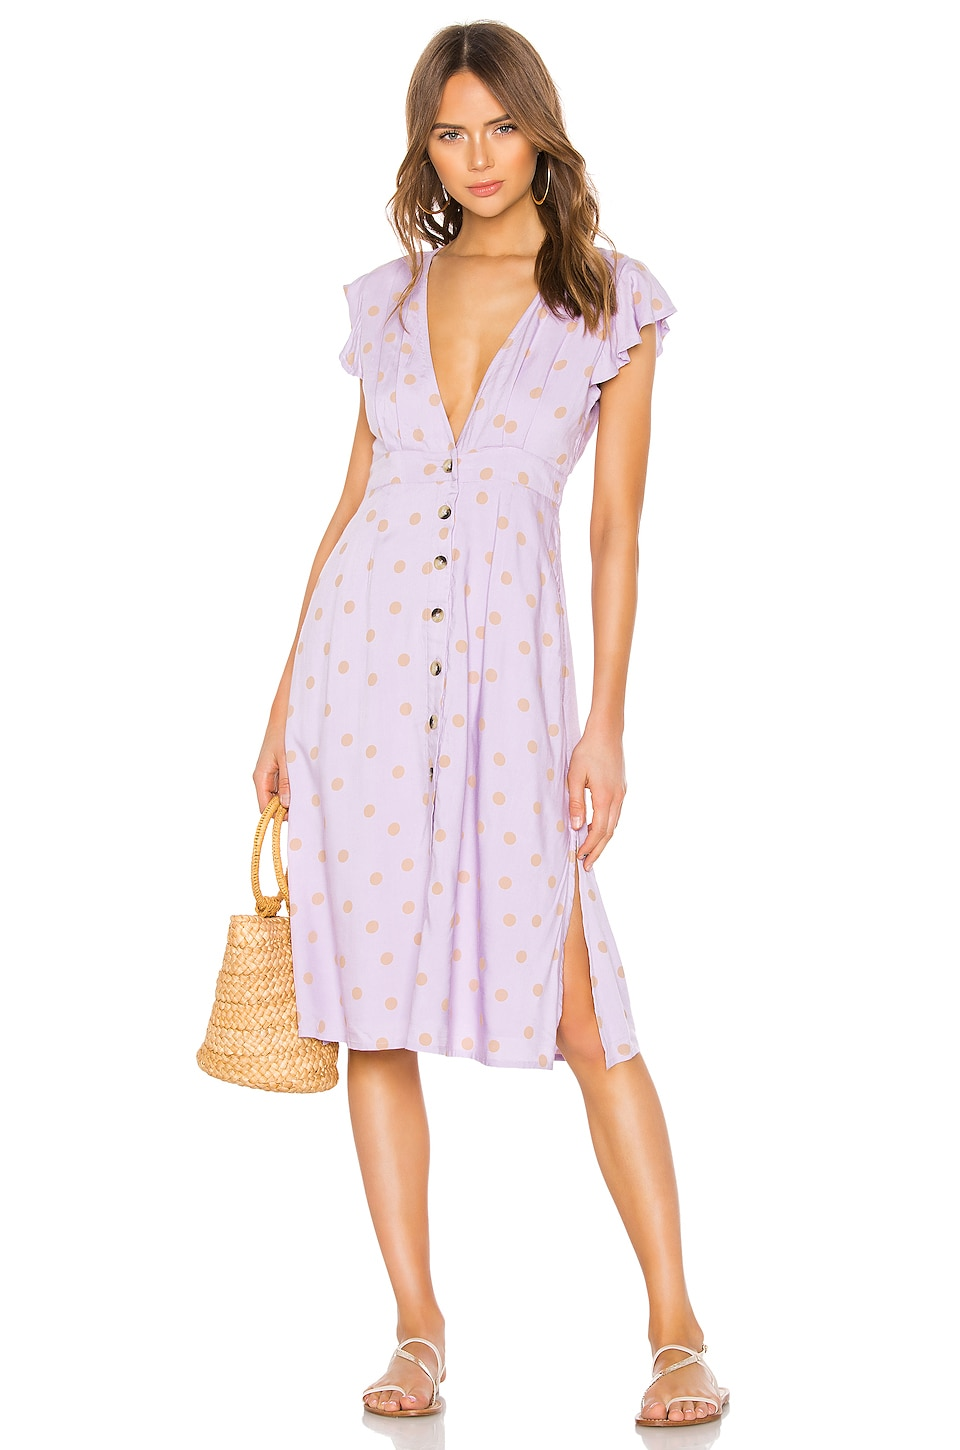 L*SPACE X REVOLVE Jordan Dress in Lilac